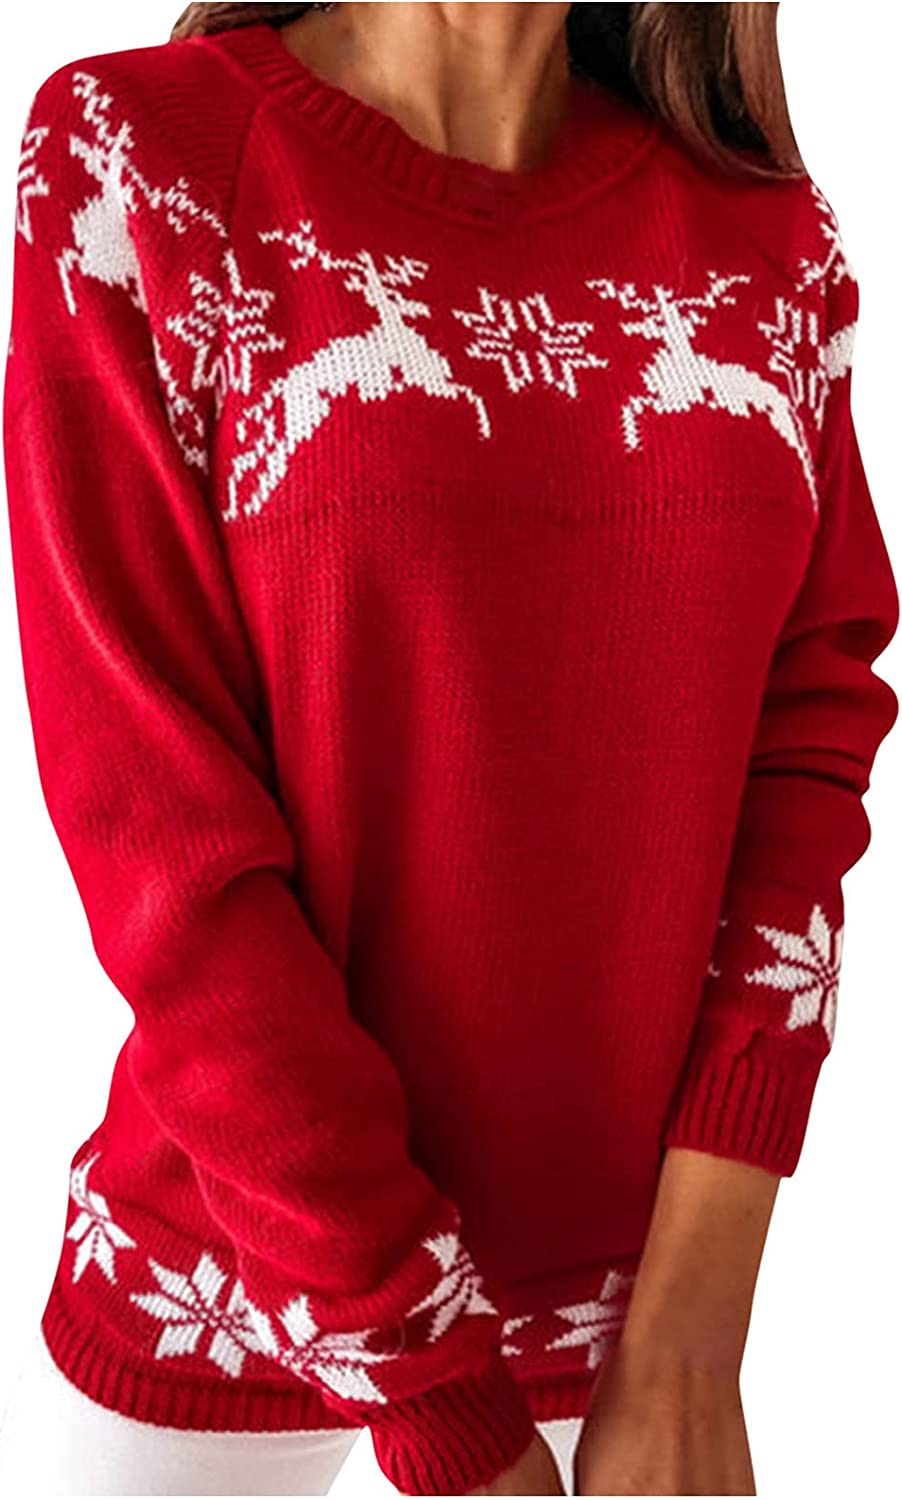 Sweater for Women Graphics Christmas Industry No. 1 Winter Special price Tops Elk Print Fall